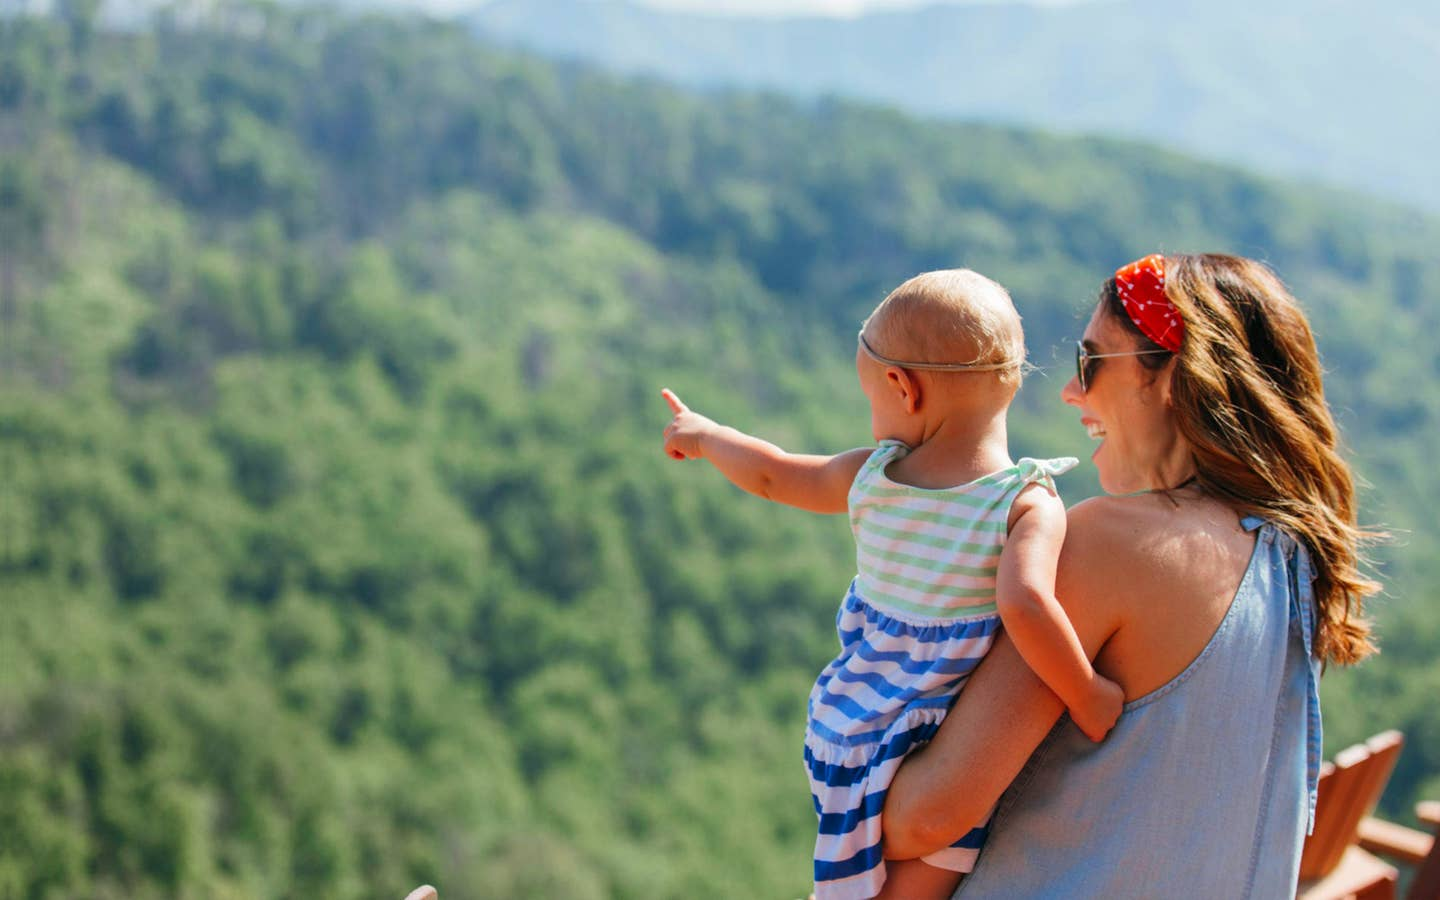 A mother hods her daughter while overlooking the Great Smoky Mountains.